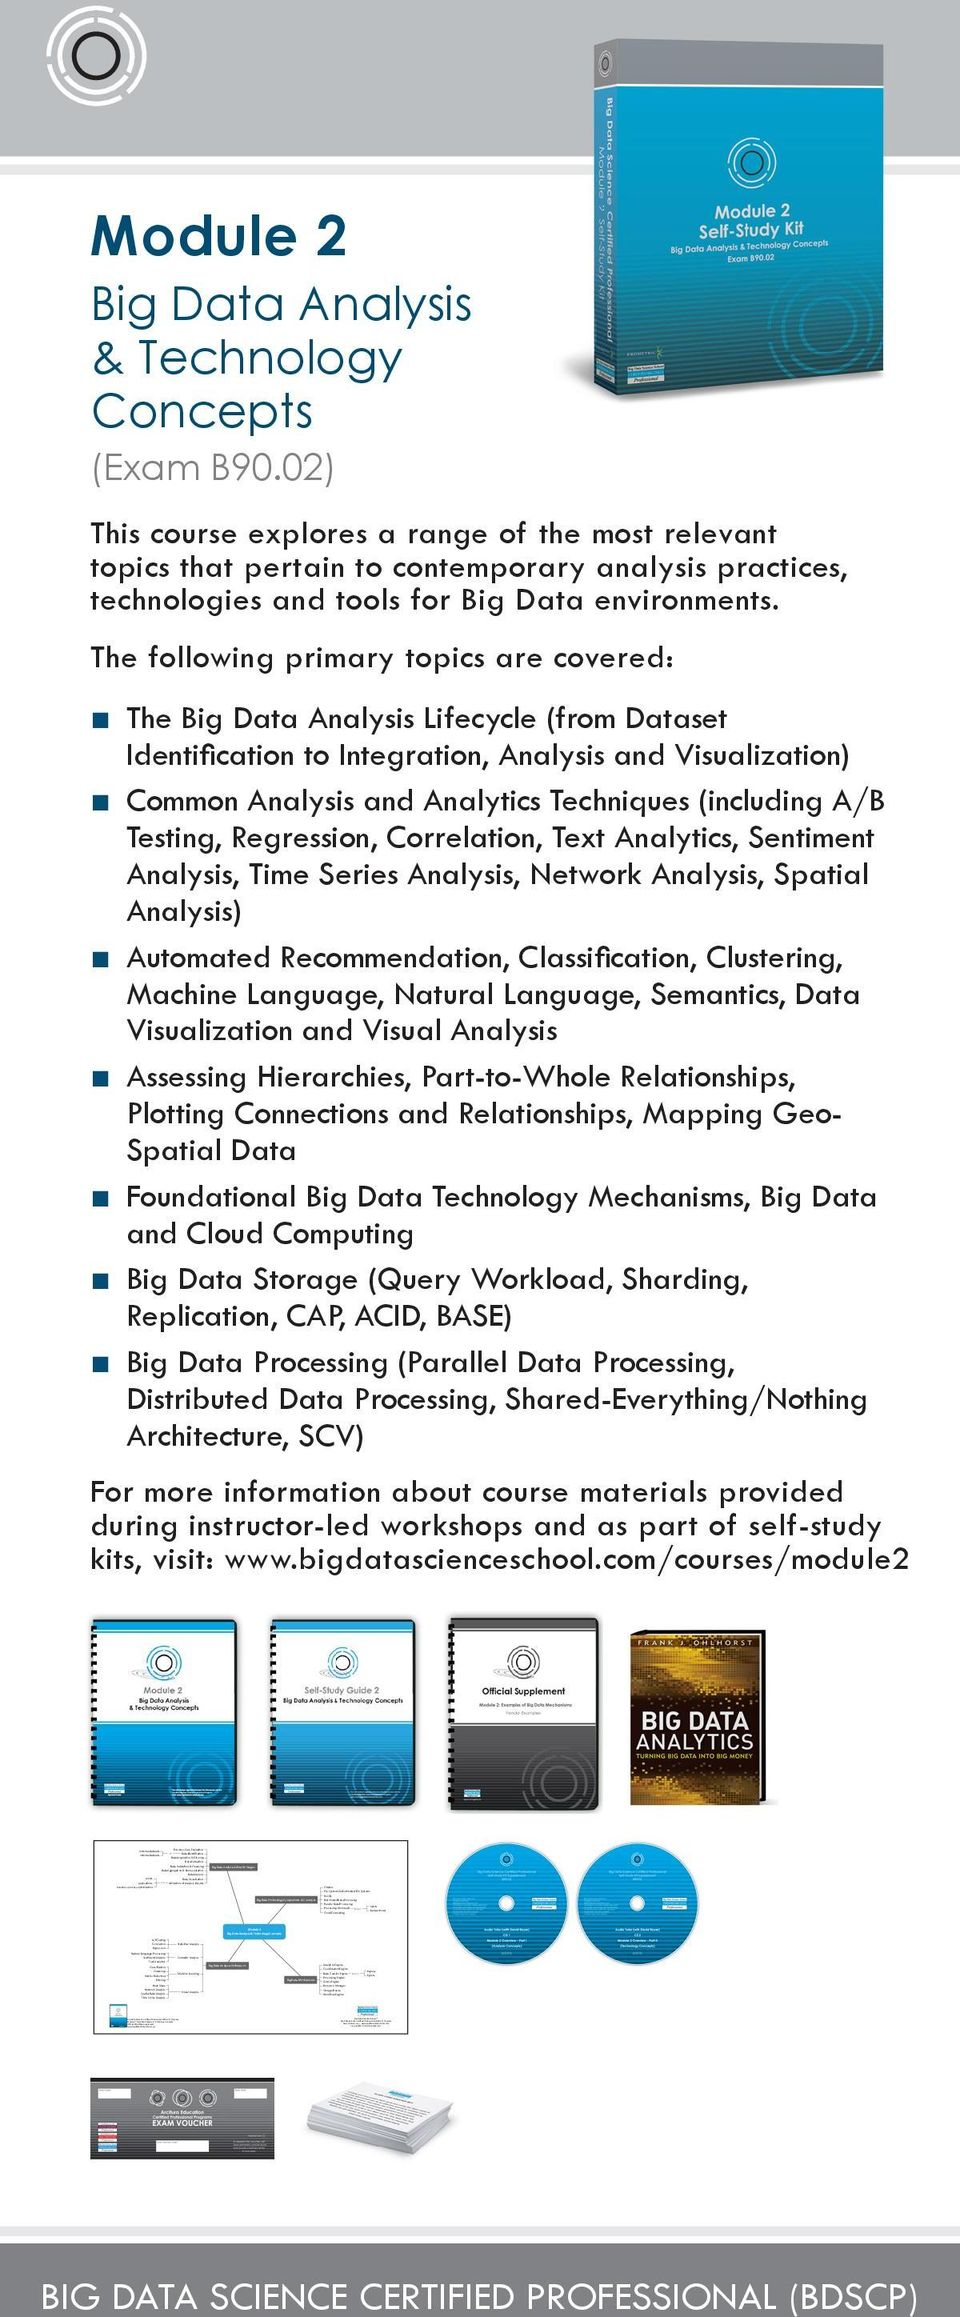 bigdatascienceschool.